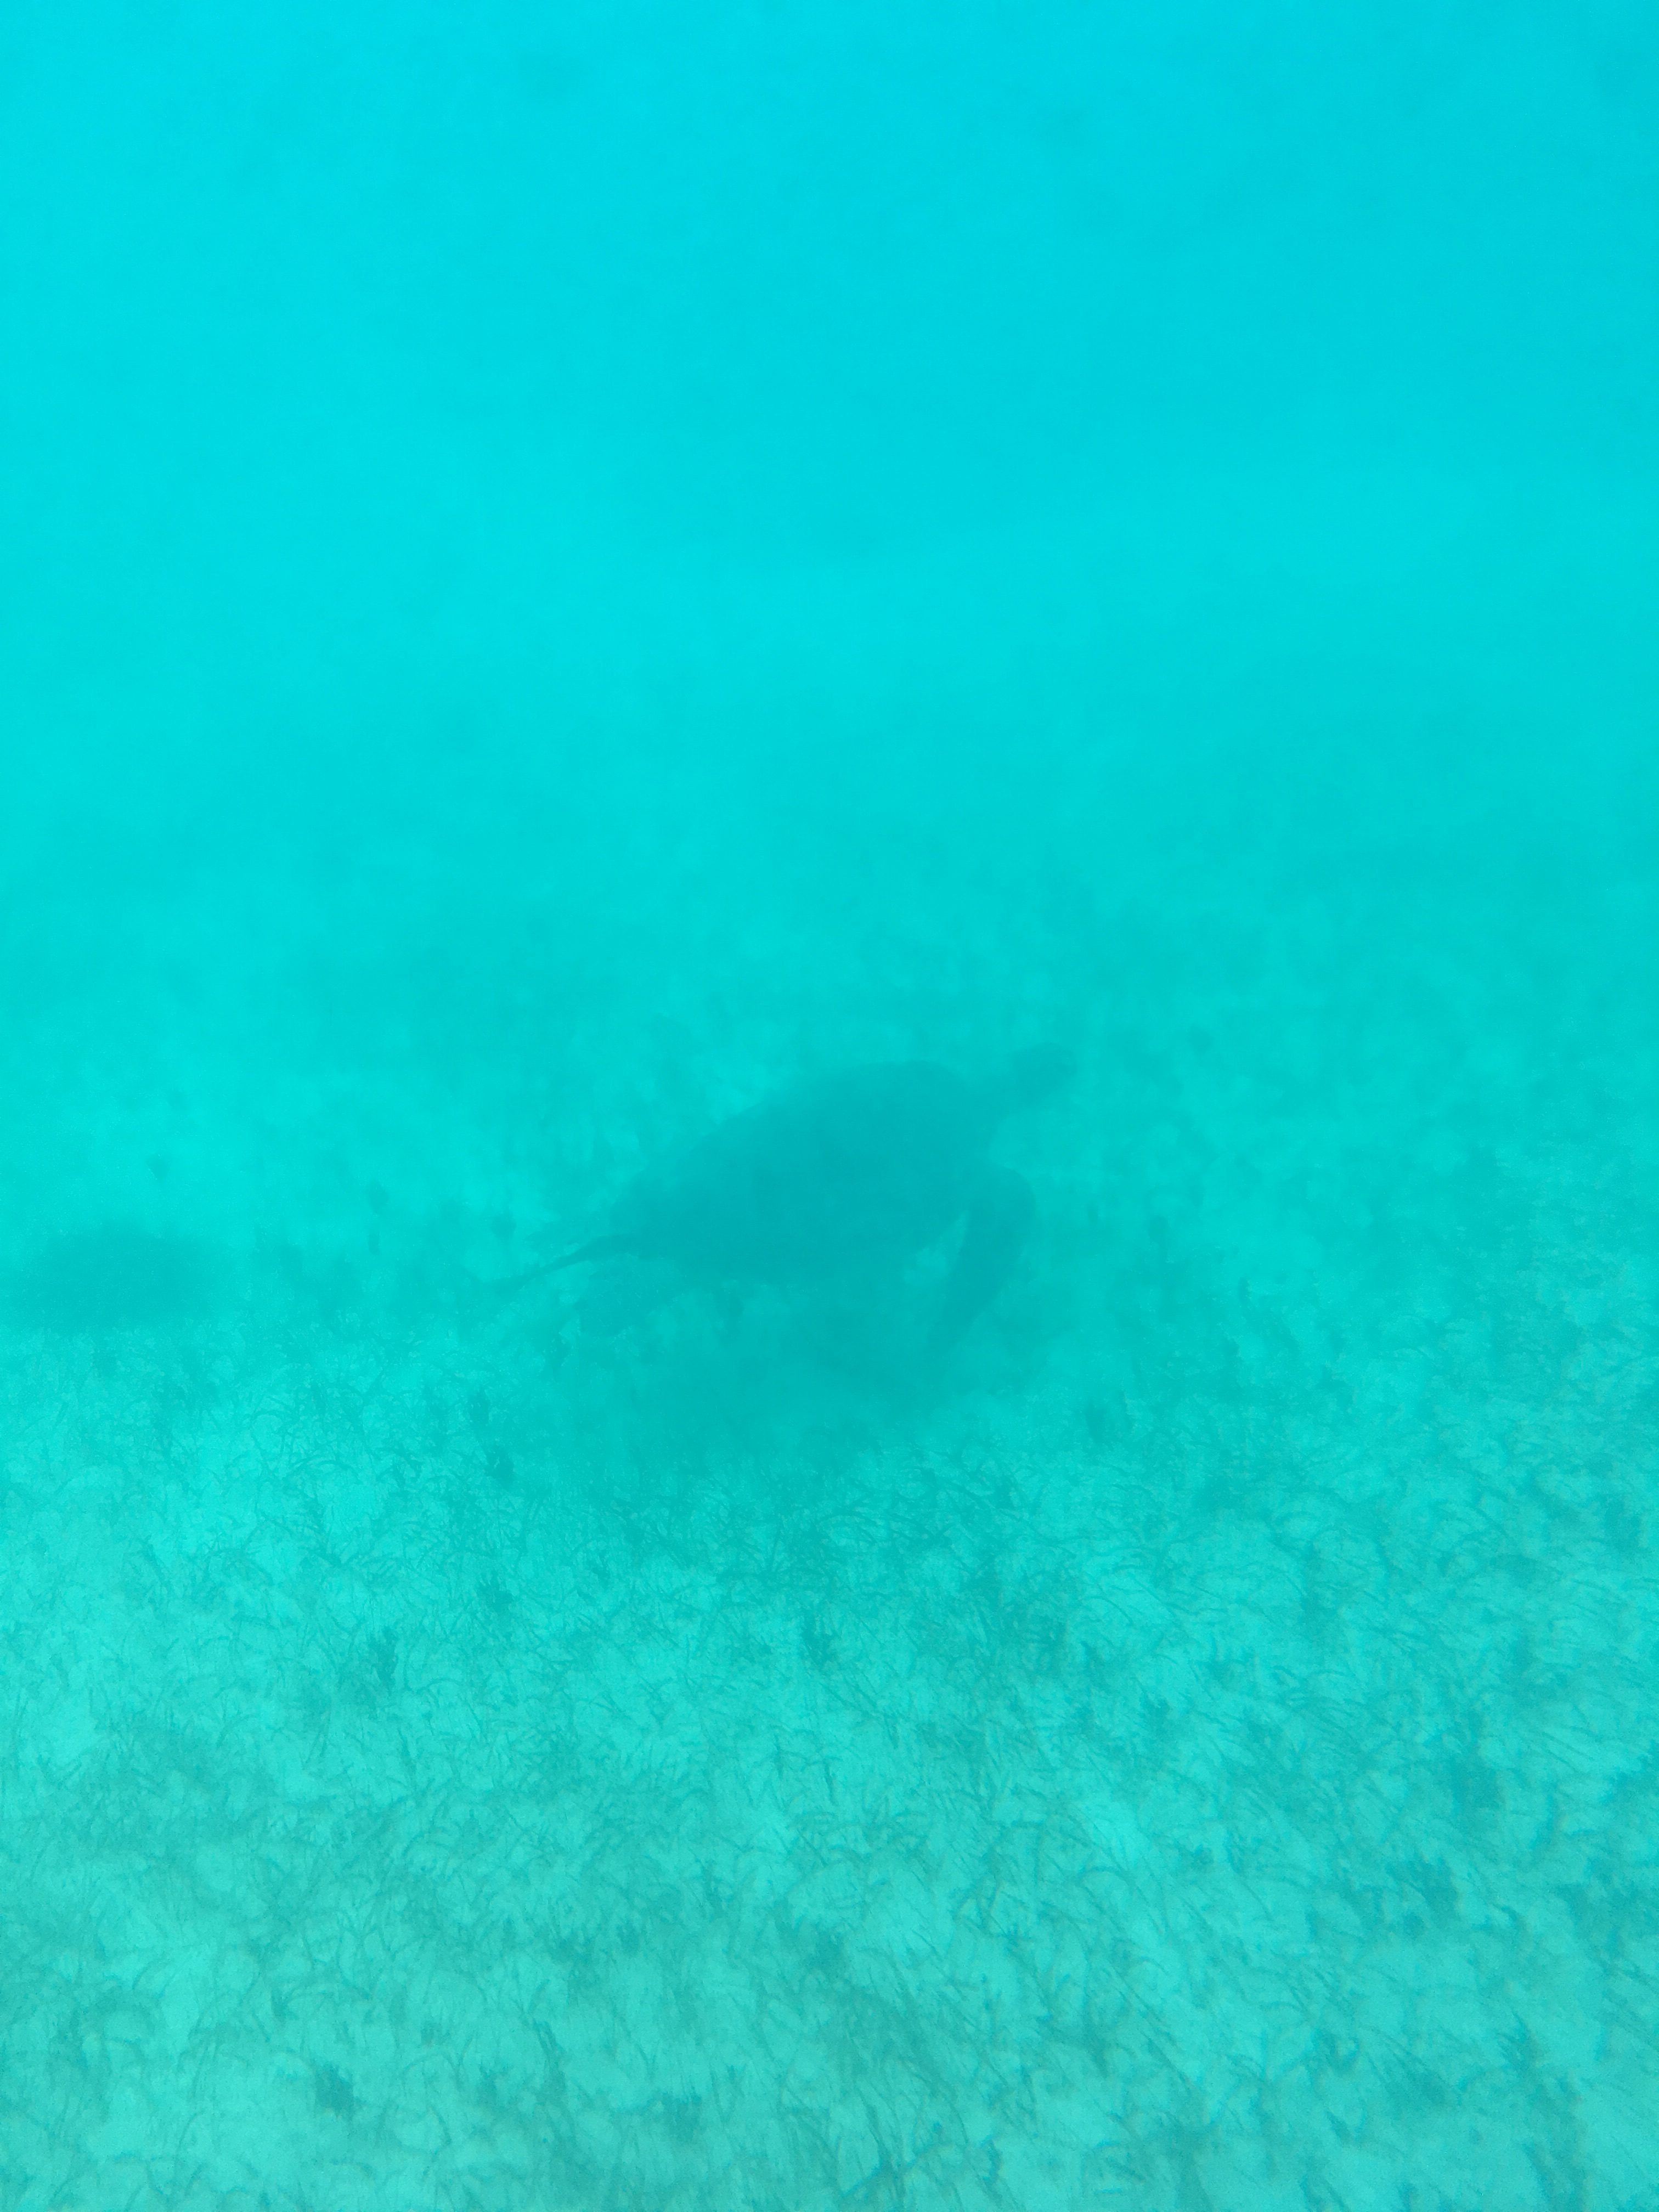 The best picture that I got of a turtle! From the Underwater Explorer Semi-Submarine. Turks & Caicos Island Guide.